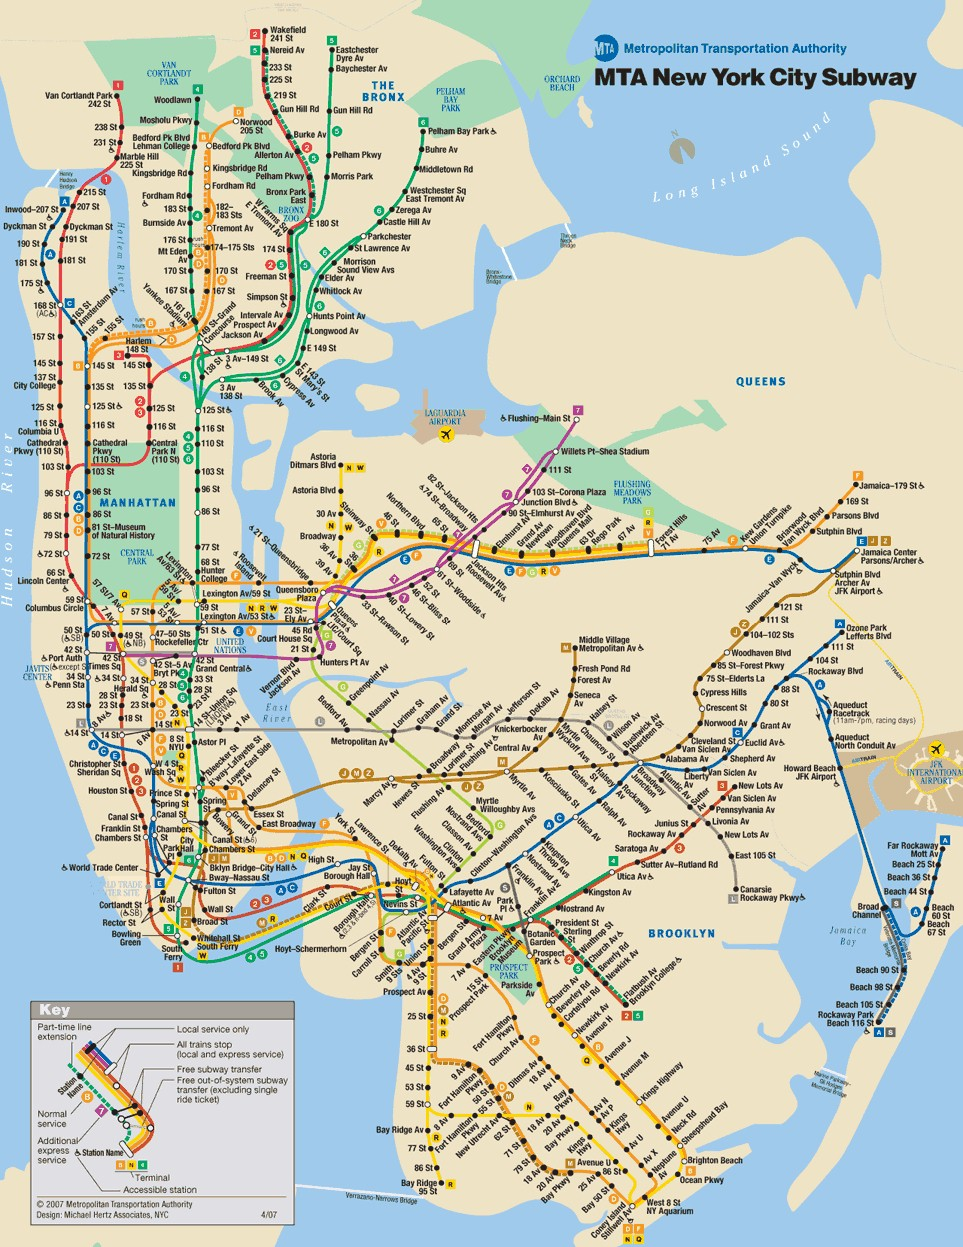 Manhattan Brooklyn Subway Map.New York City On A Budget Life And Travels